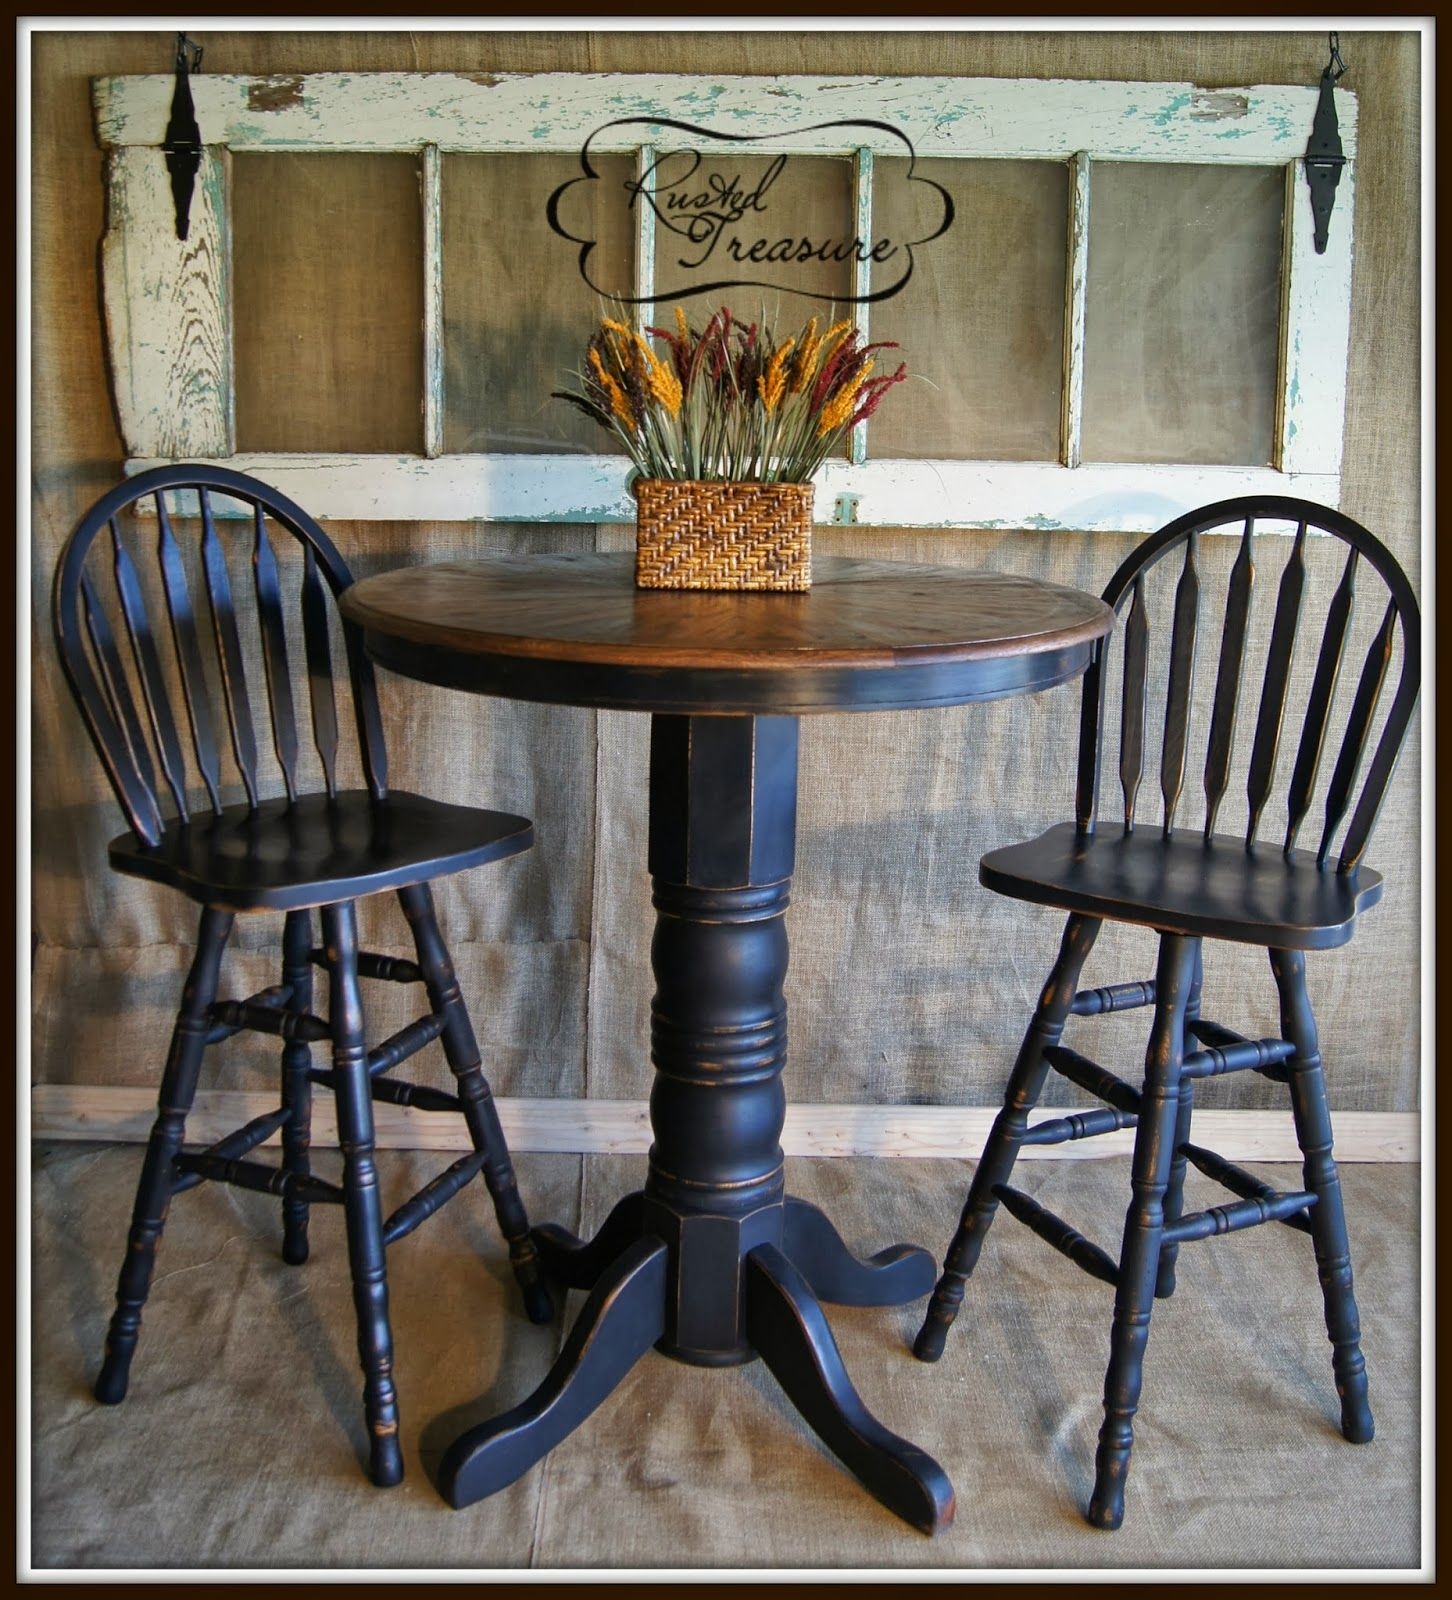 92 Best Images About Kitchen Table Redo On Pinterest: Distressed Bar Top Table And Chairs (Before And After